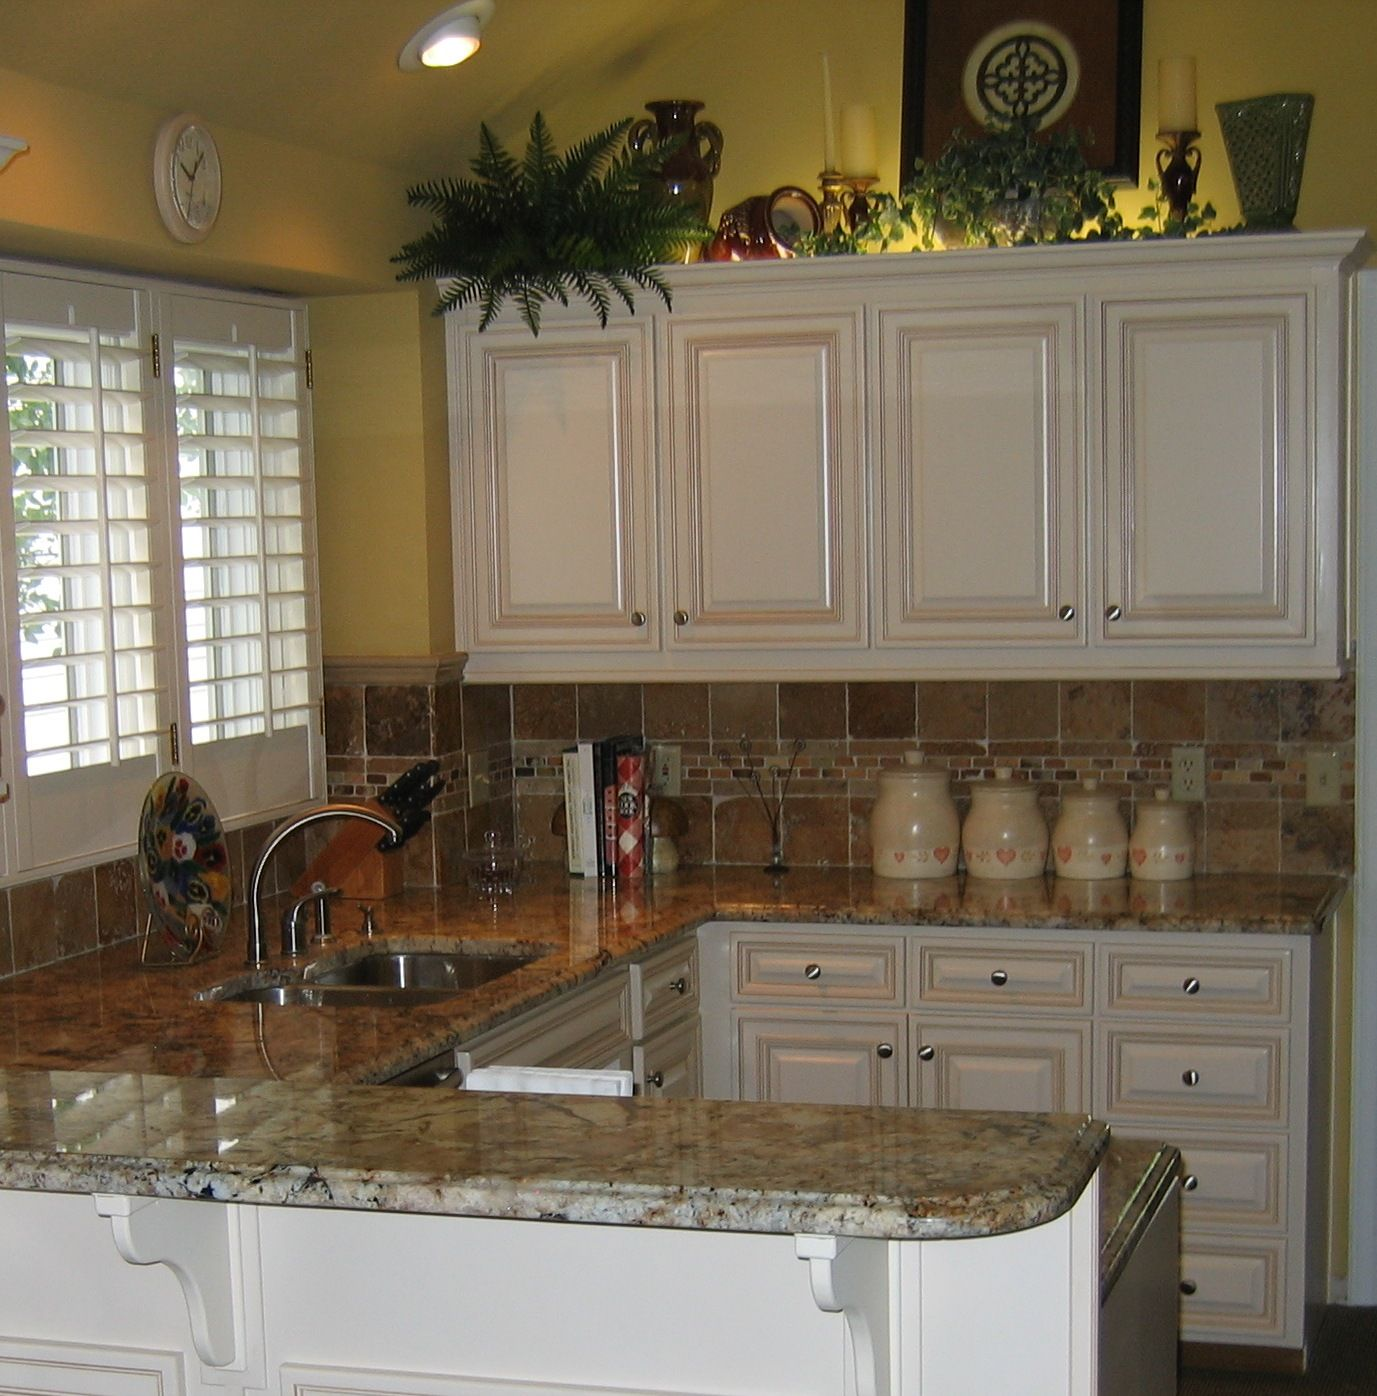 Kitchen Backsplash Granite: Reface, Maple Biscuit With Glaze, Granite Tops, Tile